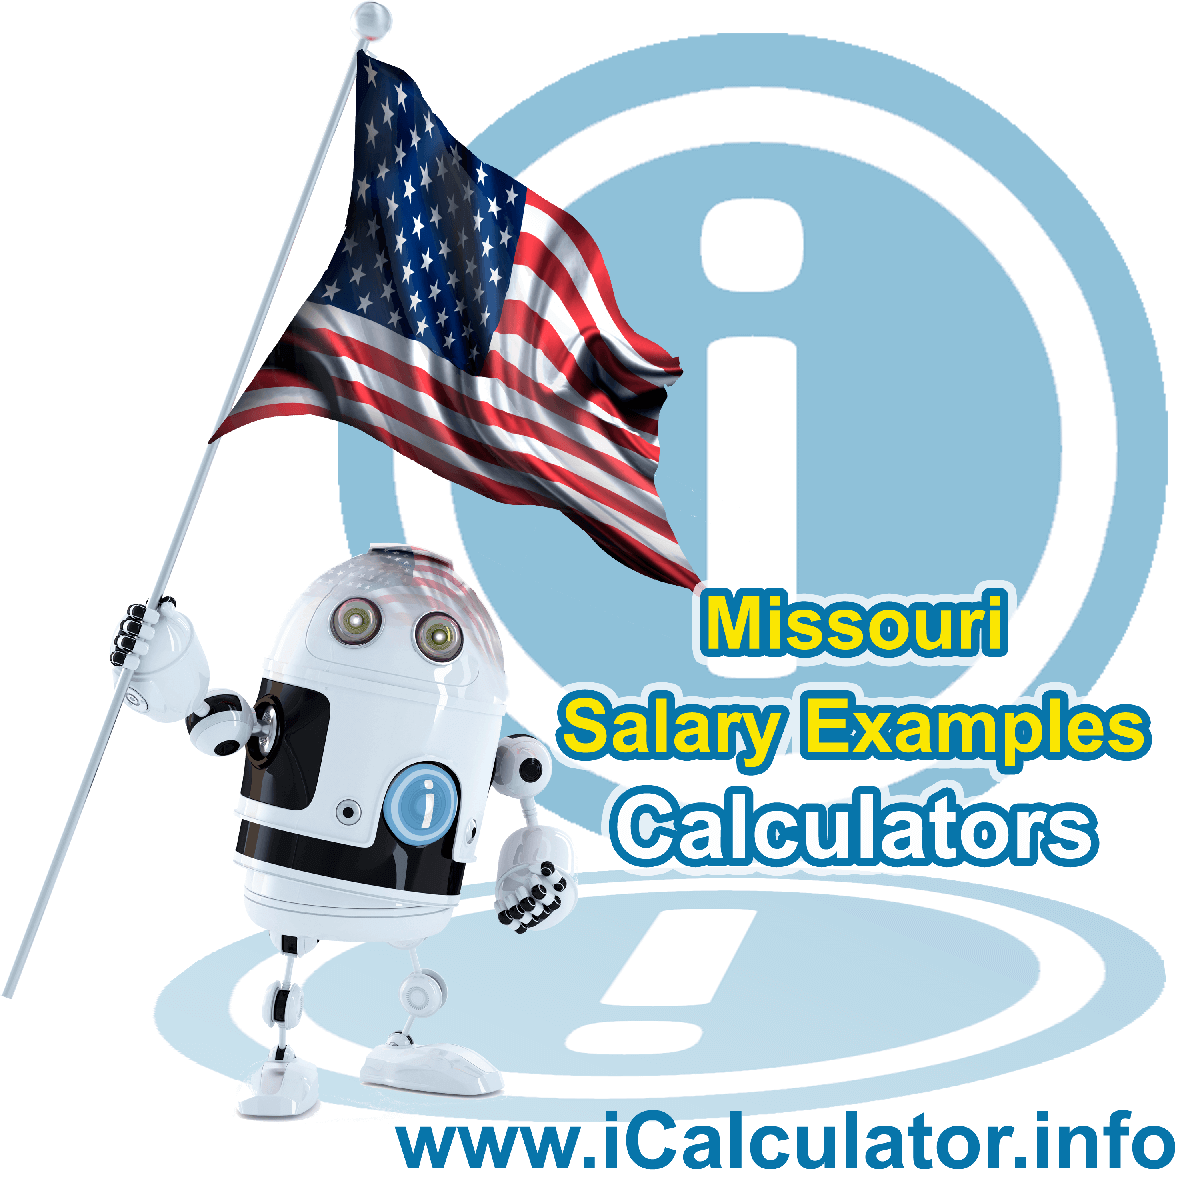 Missouri Salary Example for $210.00 in 2021 | iCalculator™ | $210.00 salary example for employee and employer paying Missouri State tincome taxes. Detailed salary after tax calculation including Missouri State Tax, Federal State Tax, Medicare Deductions, Social Security, Capital Gains and other income tax and salary deductions complete with supporting Missouri state tax tables